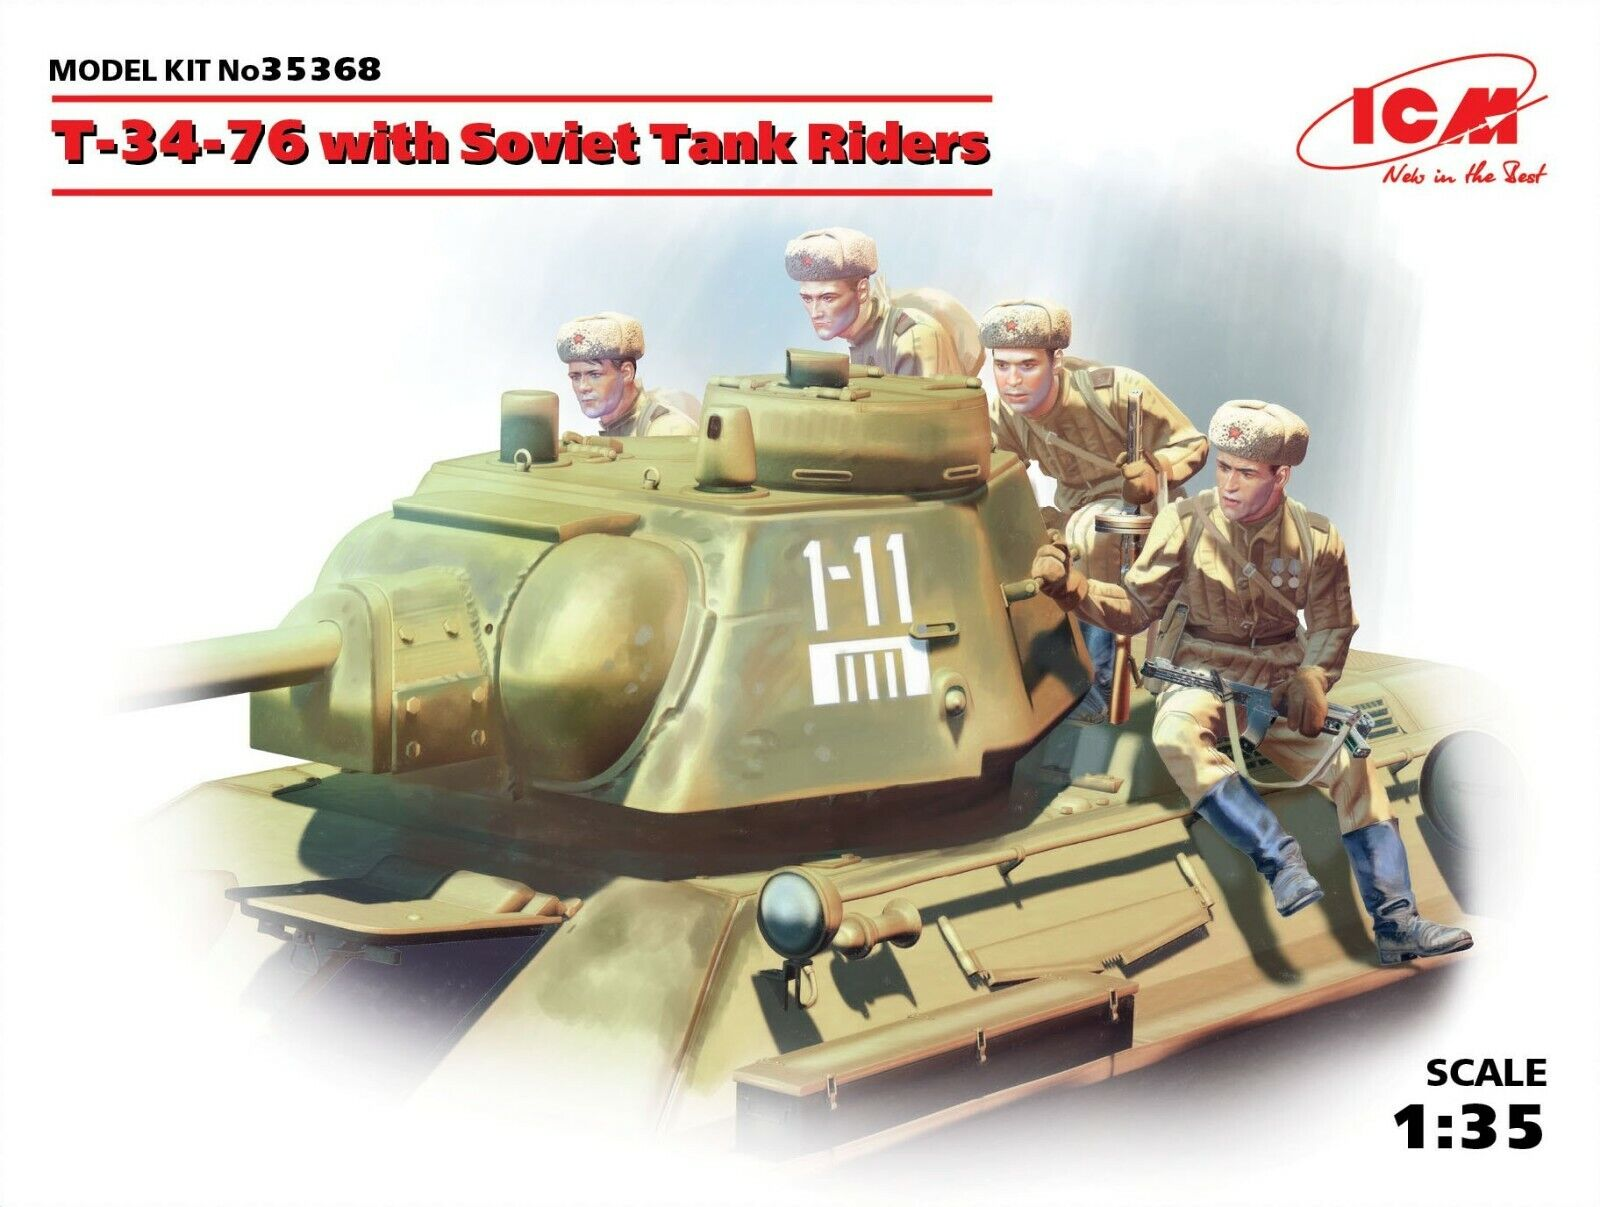 ICM 35368 T-34-76 with Soviet Tank Riders 1 35 scale model kit 190 mm